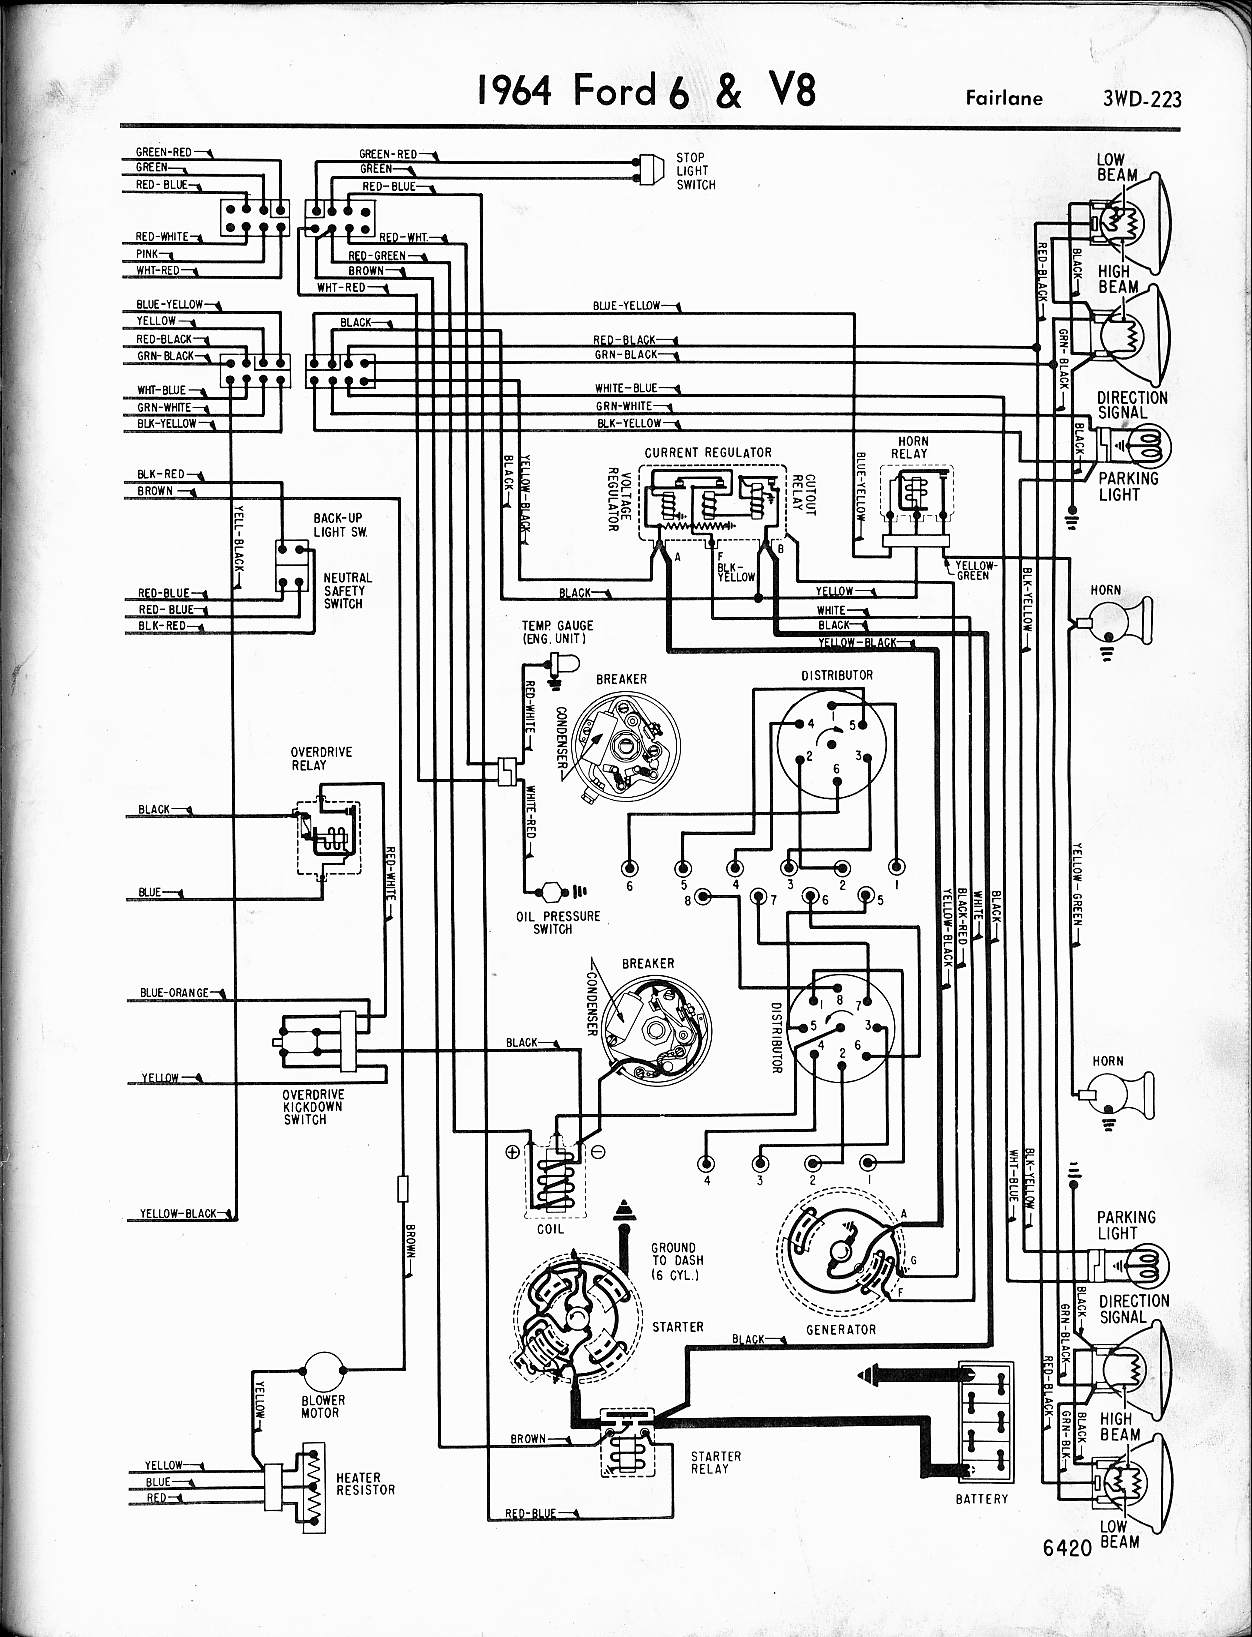 MWire5765 223 1964 1966 thunderbirfd wiring schematic 66 mustang wiring diagram 1966 ford truck wiring diagram at nearapp.co